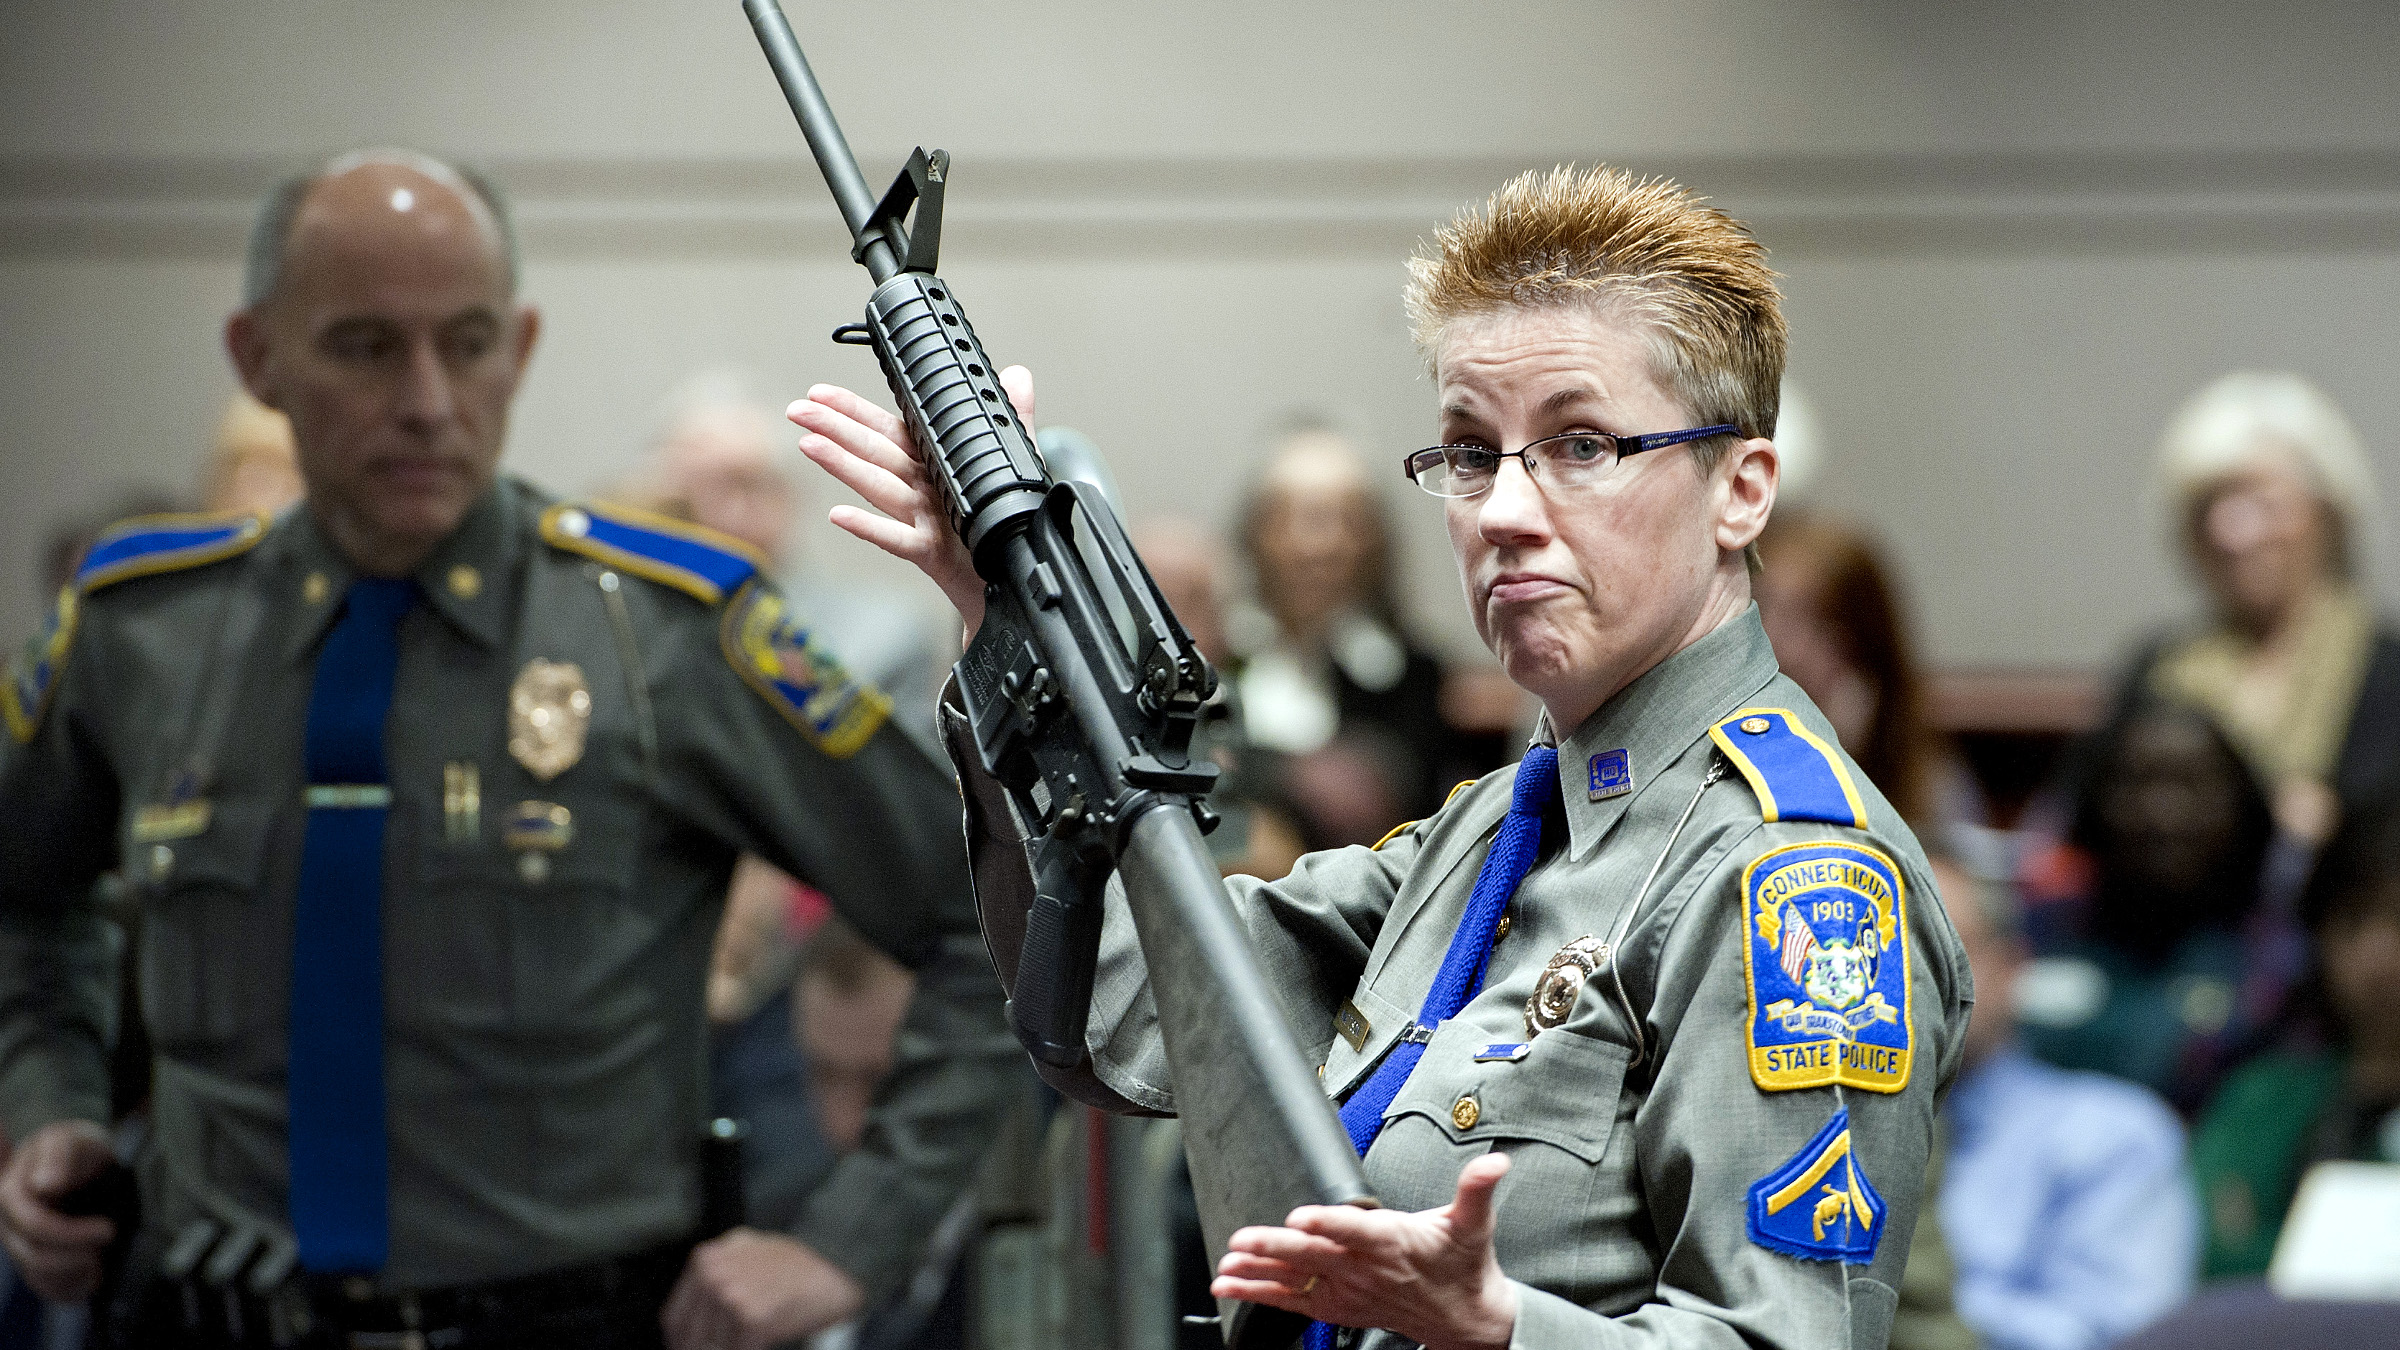 Firearms Training Unit Detective Barbara J. Mattson of the Connecticut State Police holds up a Bushmaster AR-15 rifle, the same make and model of gun used by Adam Lanza in the Sandy Hook School shooting, for a demonstration during a hearing of a legislative subcommittee reviewing gun laws, at the Legislative Office Building in Hartford, Conn., Monday, Jan. 28, 2013. The parents of children killed in the Newtown school shooting called for better enforcement of gun laws Monday at the legislative hearing.